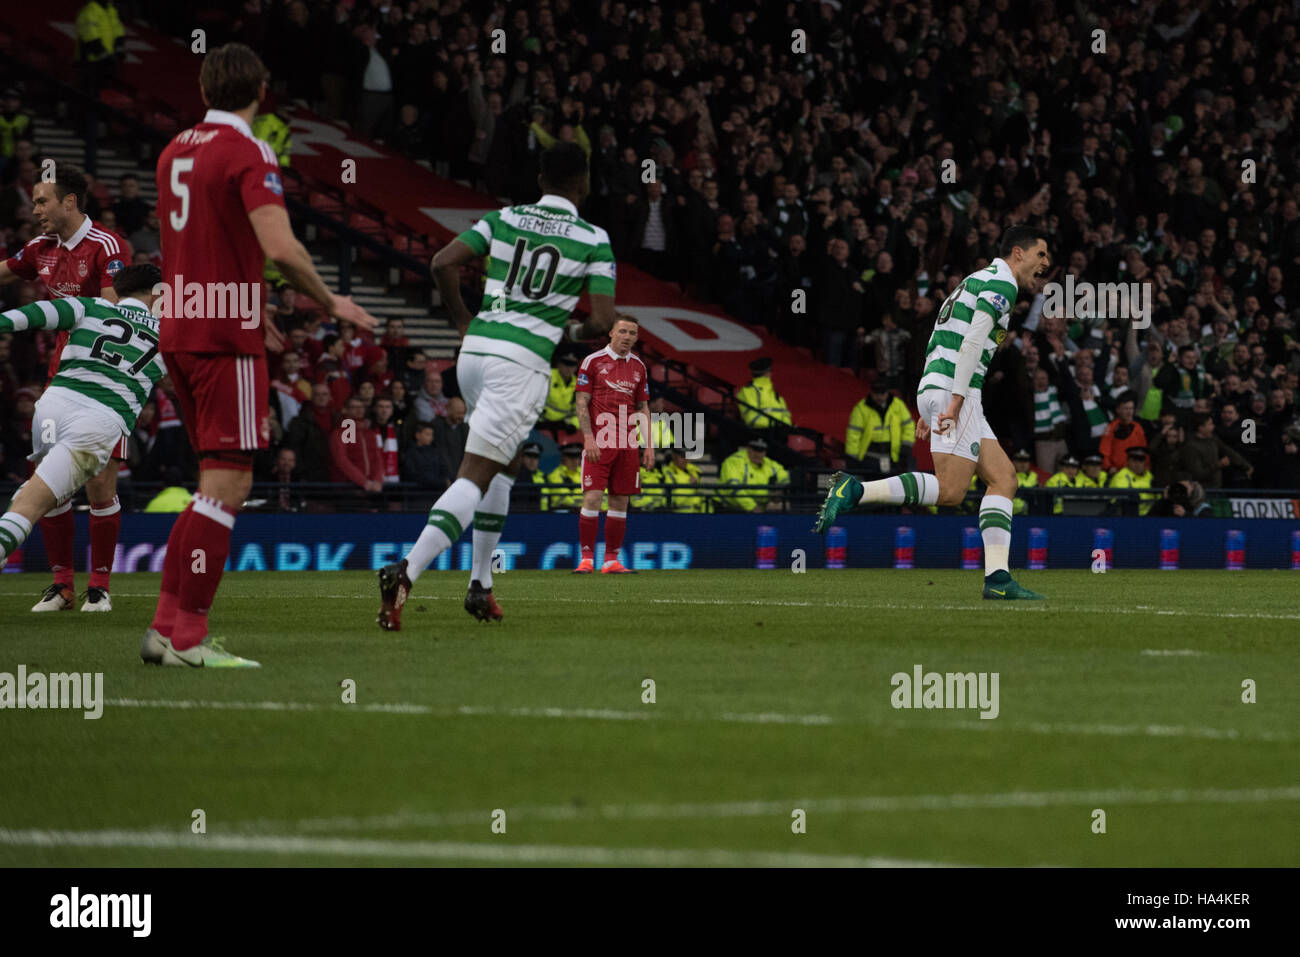 Aberdeen v Celtic, Betrfred League Cup Final, Glasgow, UK. 27th Nov, 2016.  Celtic players celebrate after Tom Rogic - Stock Image